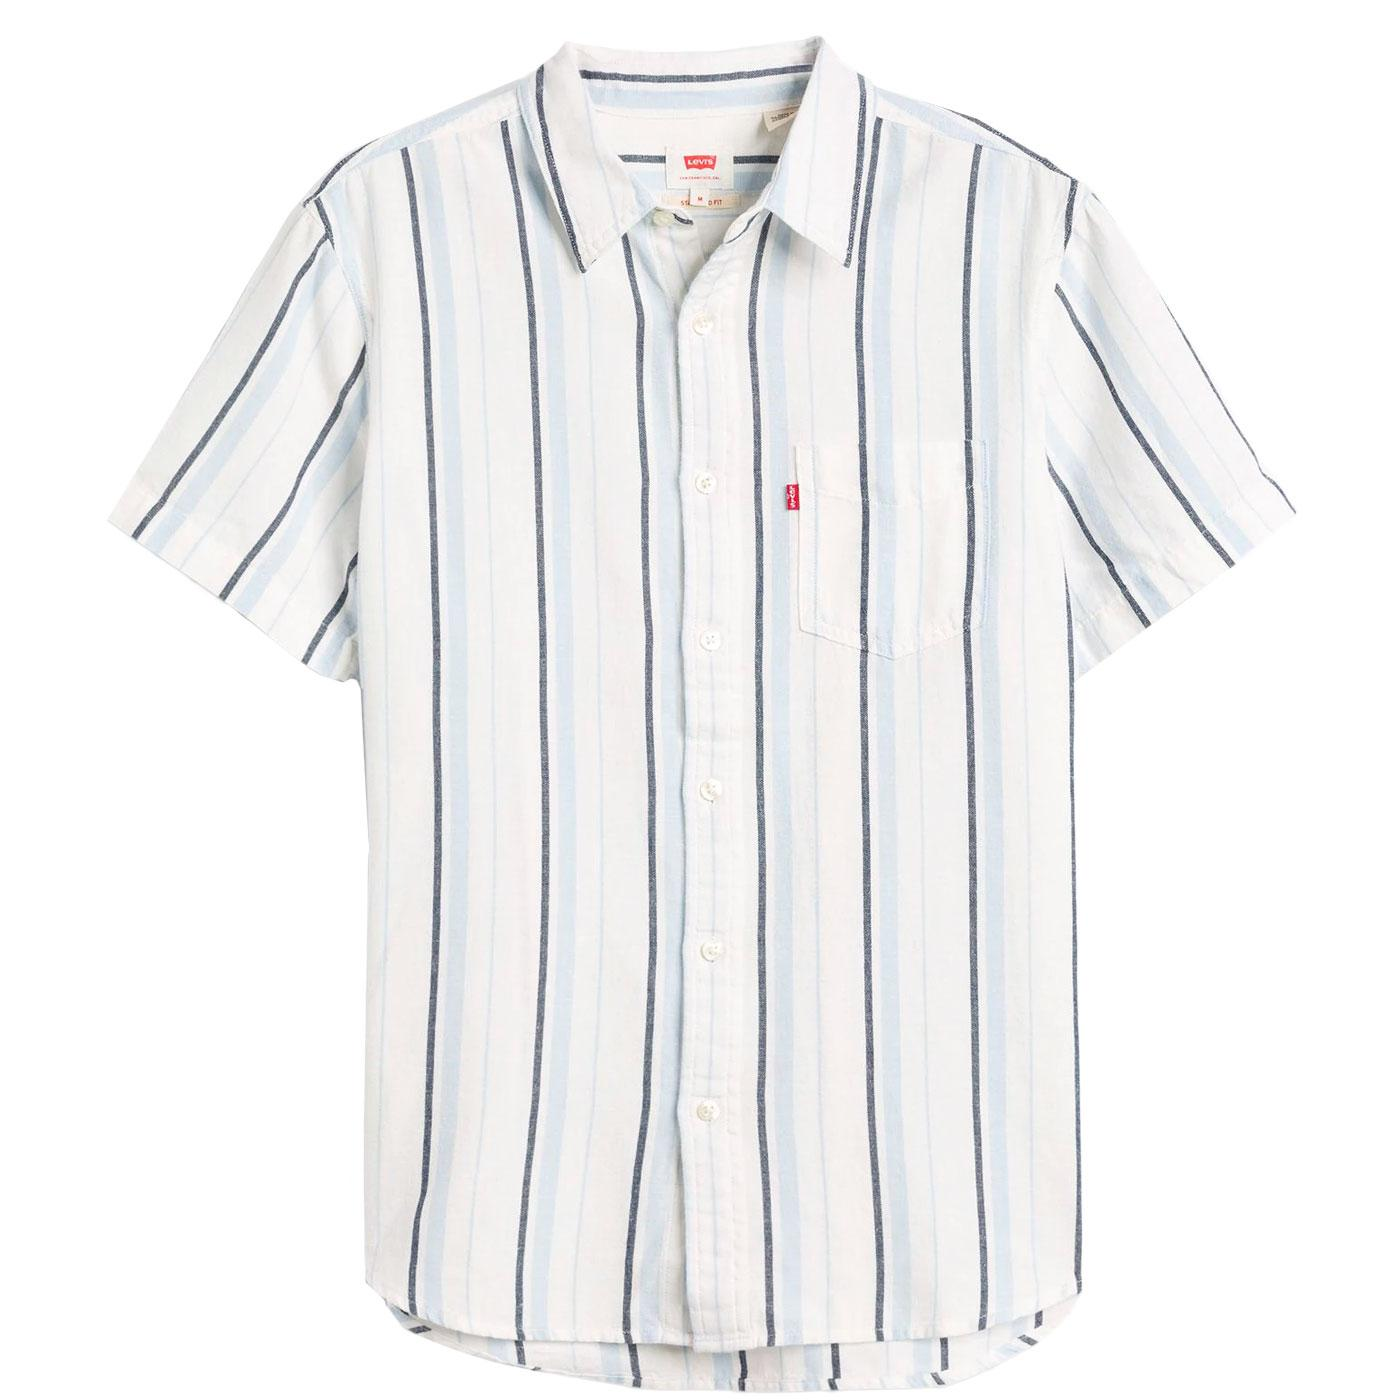 LEVI'S Retro Stripe Linen Blend 1 Pocket Shirt (C)